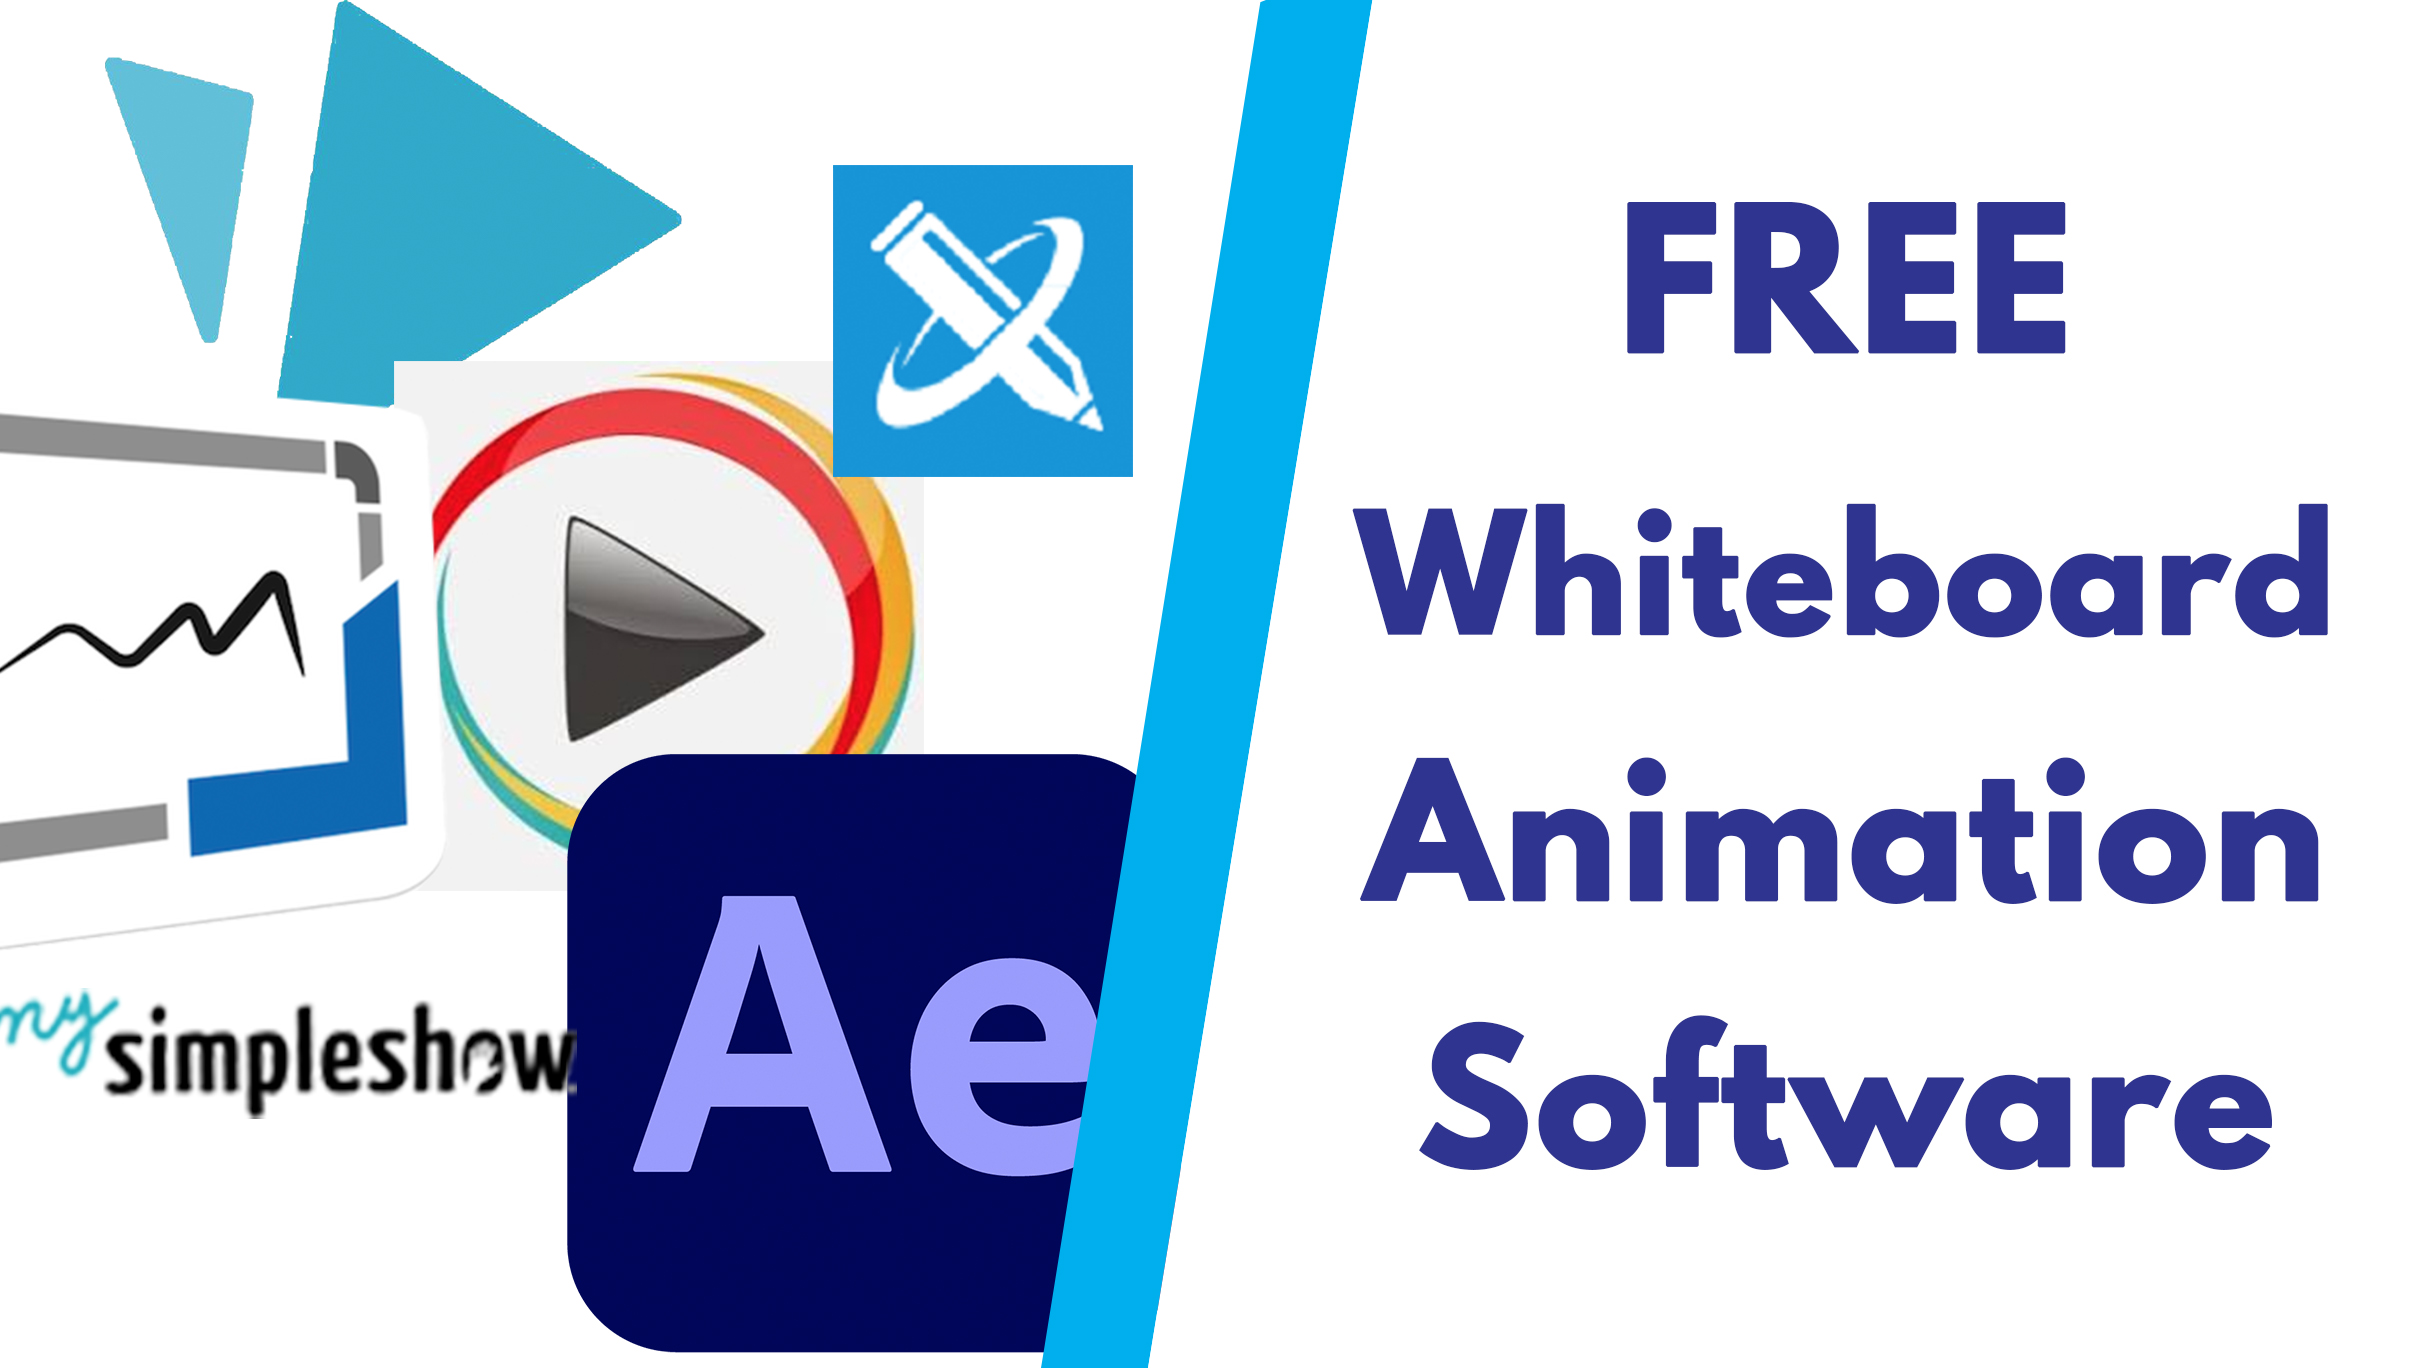 FREE WB software